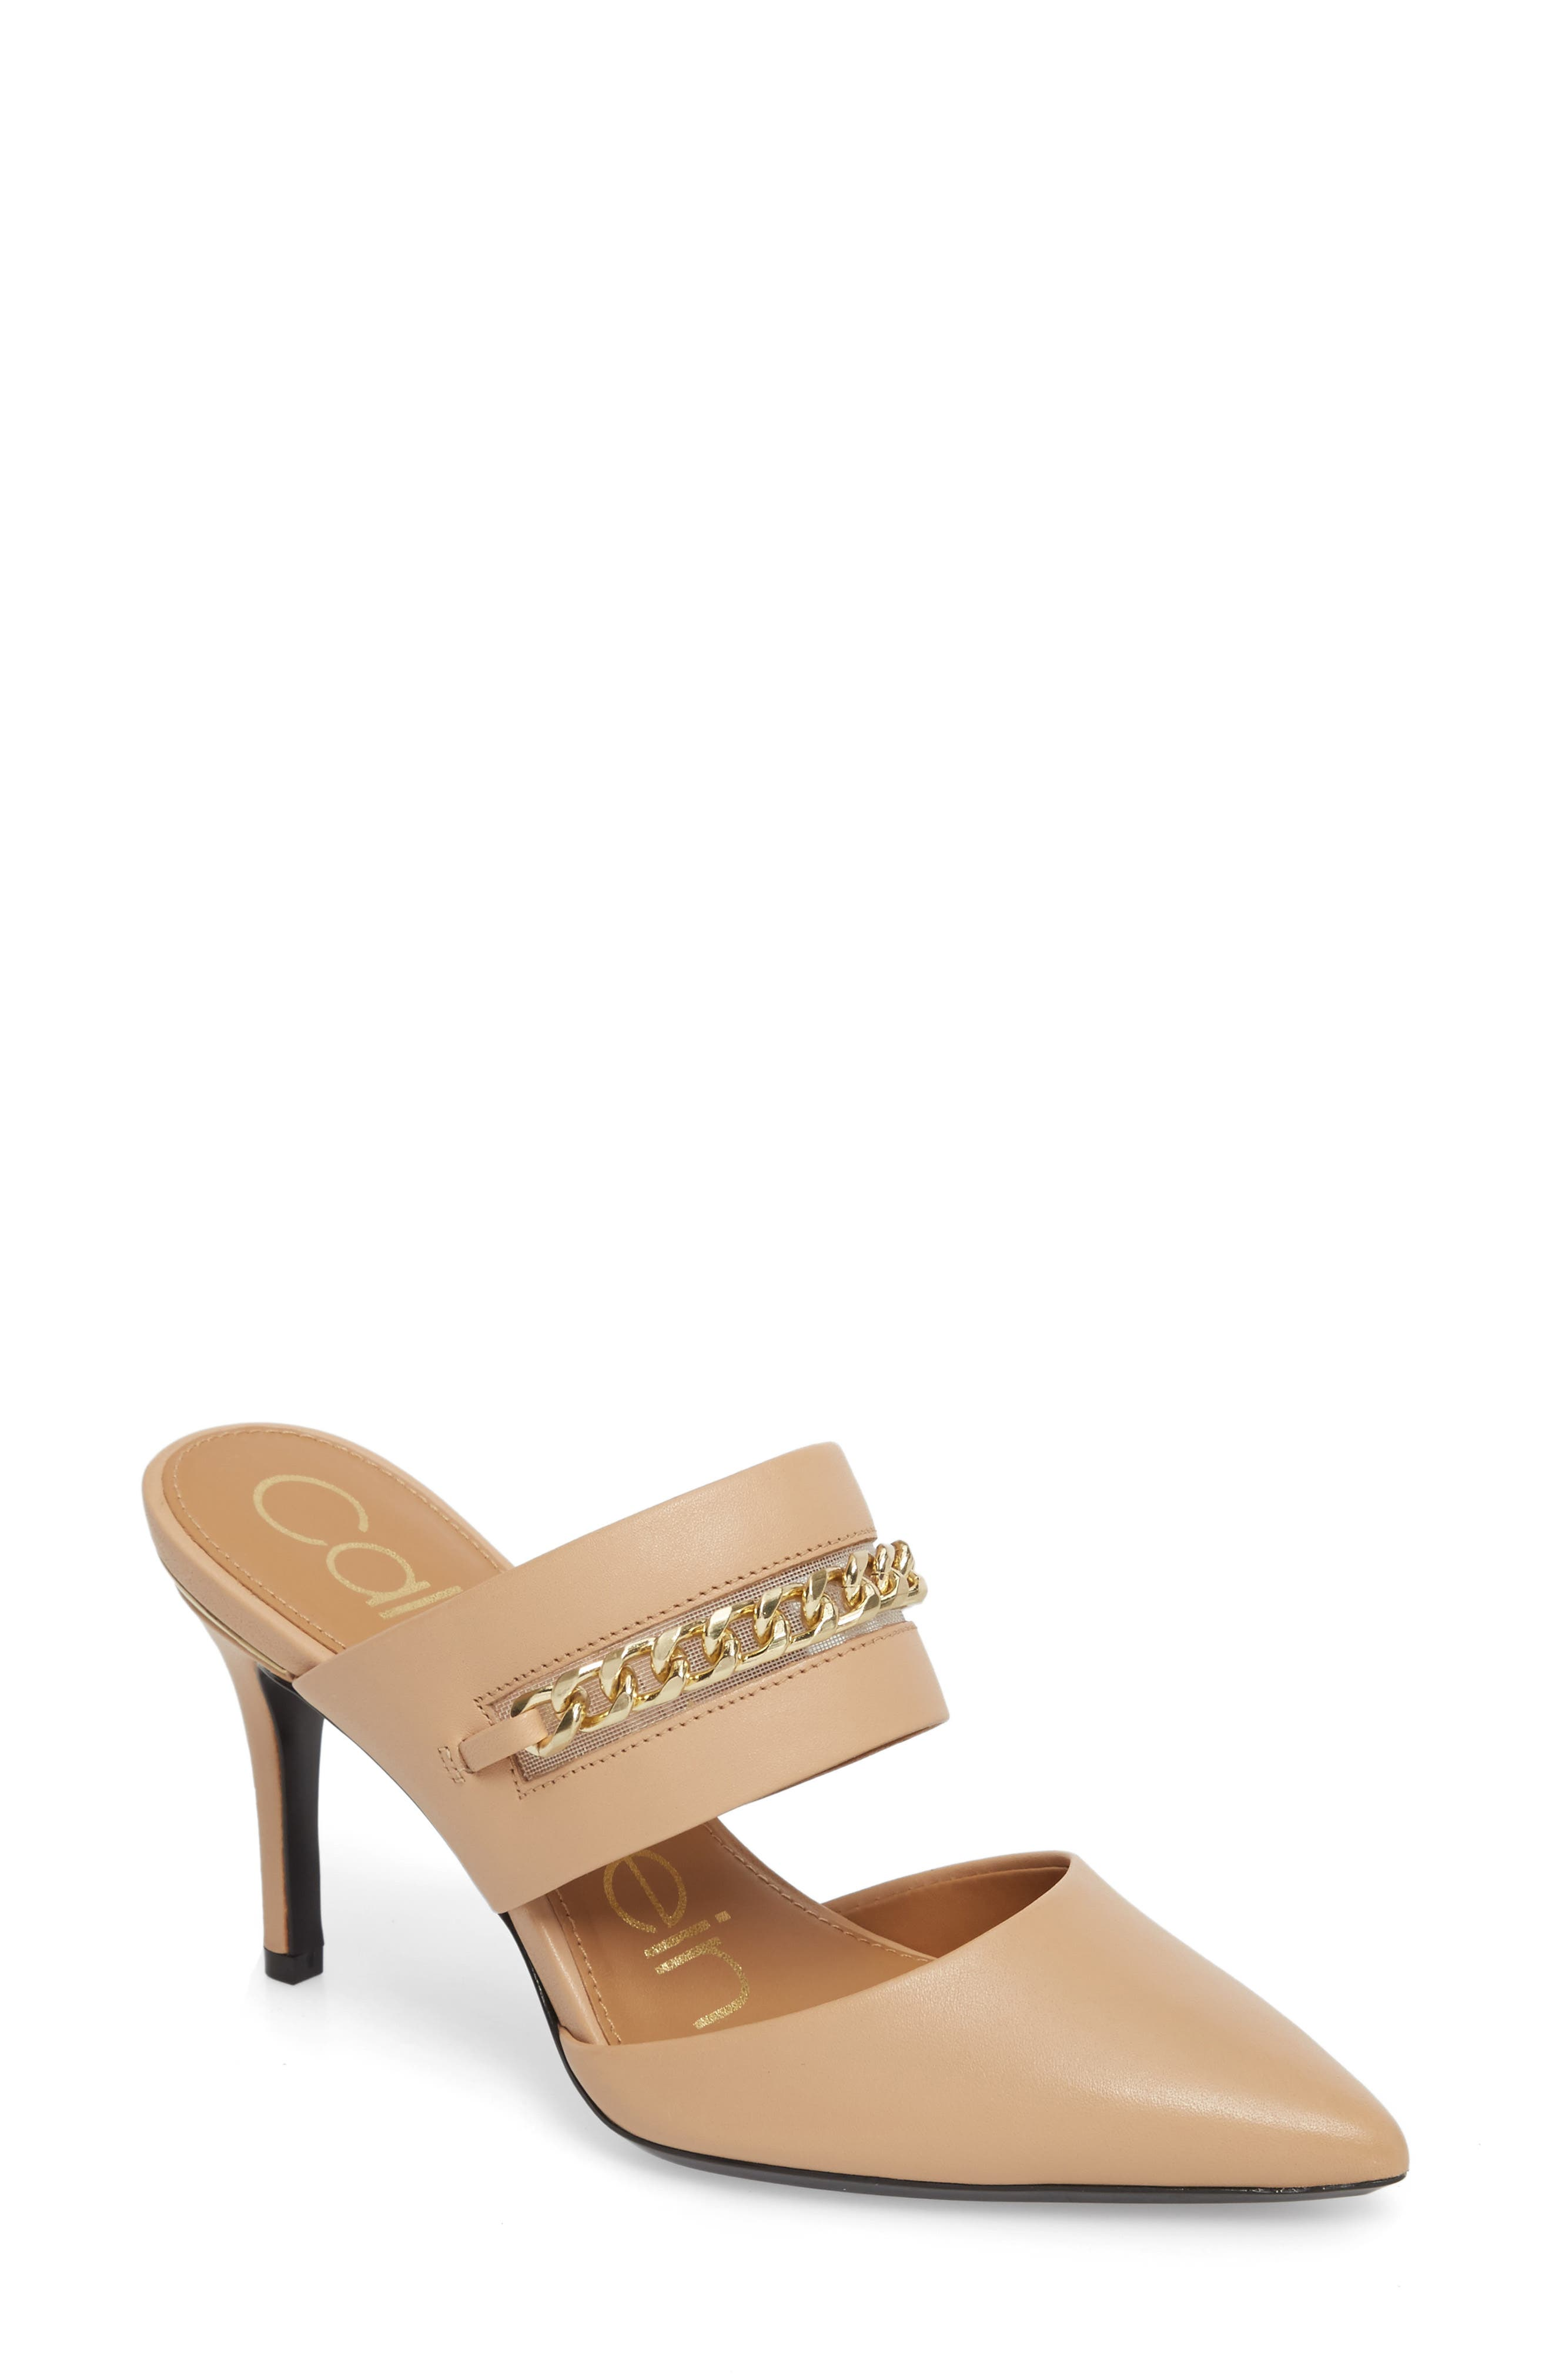 Ginette Embellished Pointy Toe Mule,                             Main thumbnail 1, color,                             Sandstorm Leather